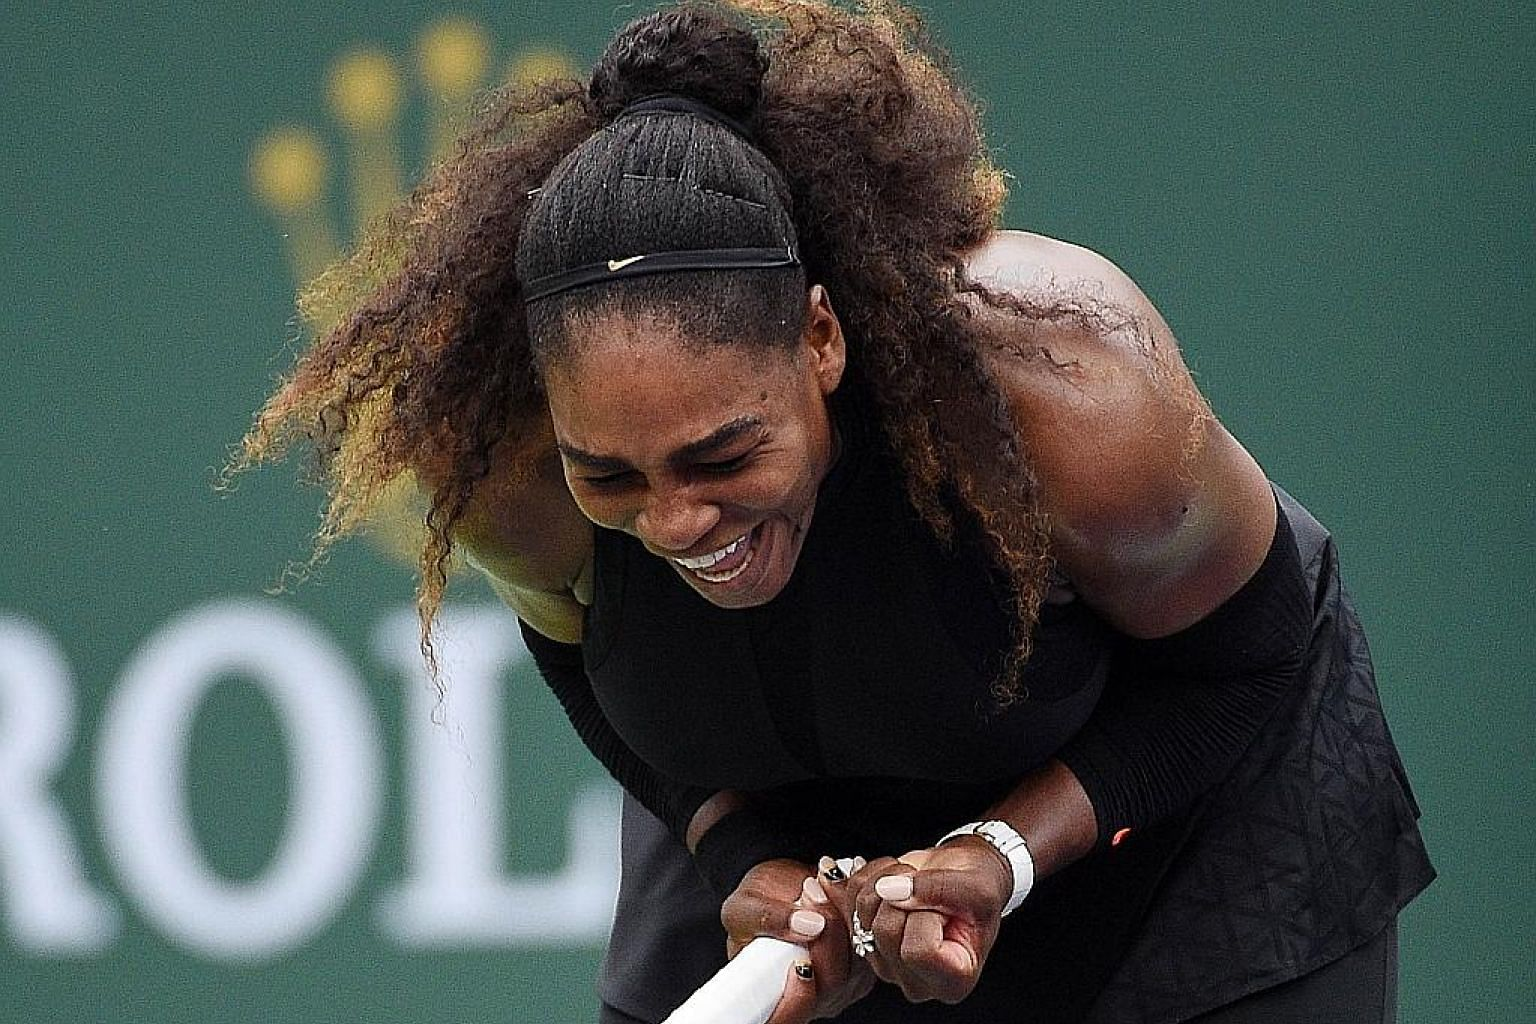 Serena Williams celebrates after her 7-6 (7-5), 7-5 victory against No. 29 seed Kiki Bertens of the Netherlands in the second round of the BNP Paribas Open at Indian Wells, California, on Saturday. Unseeded Serena leads the head-to-head against her s